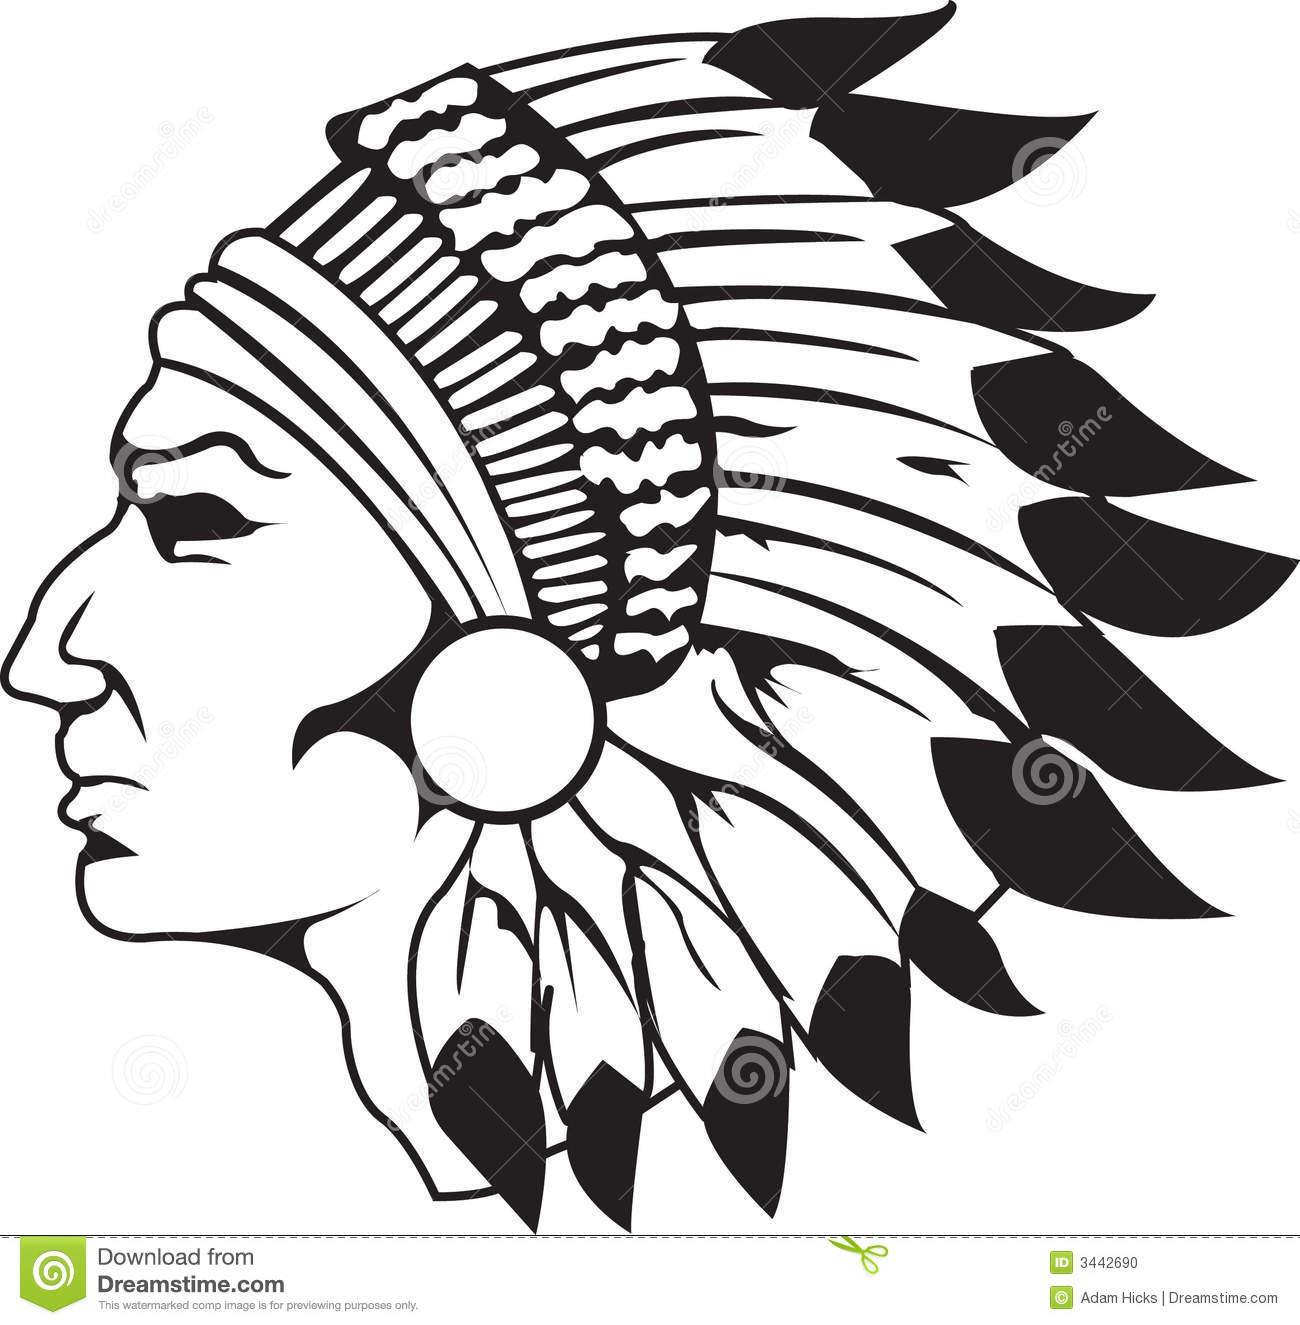 Canoe clipart cherokee indian  indian American Indian Clipart